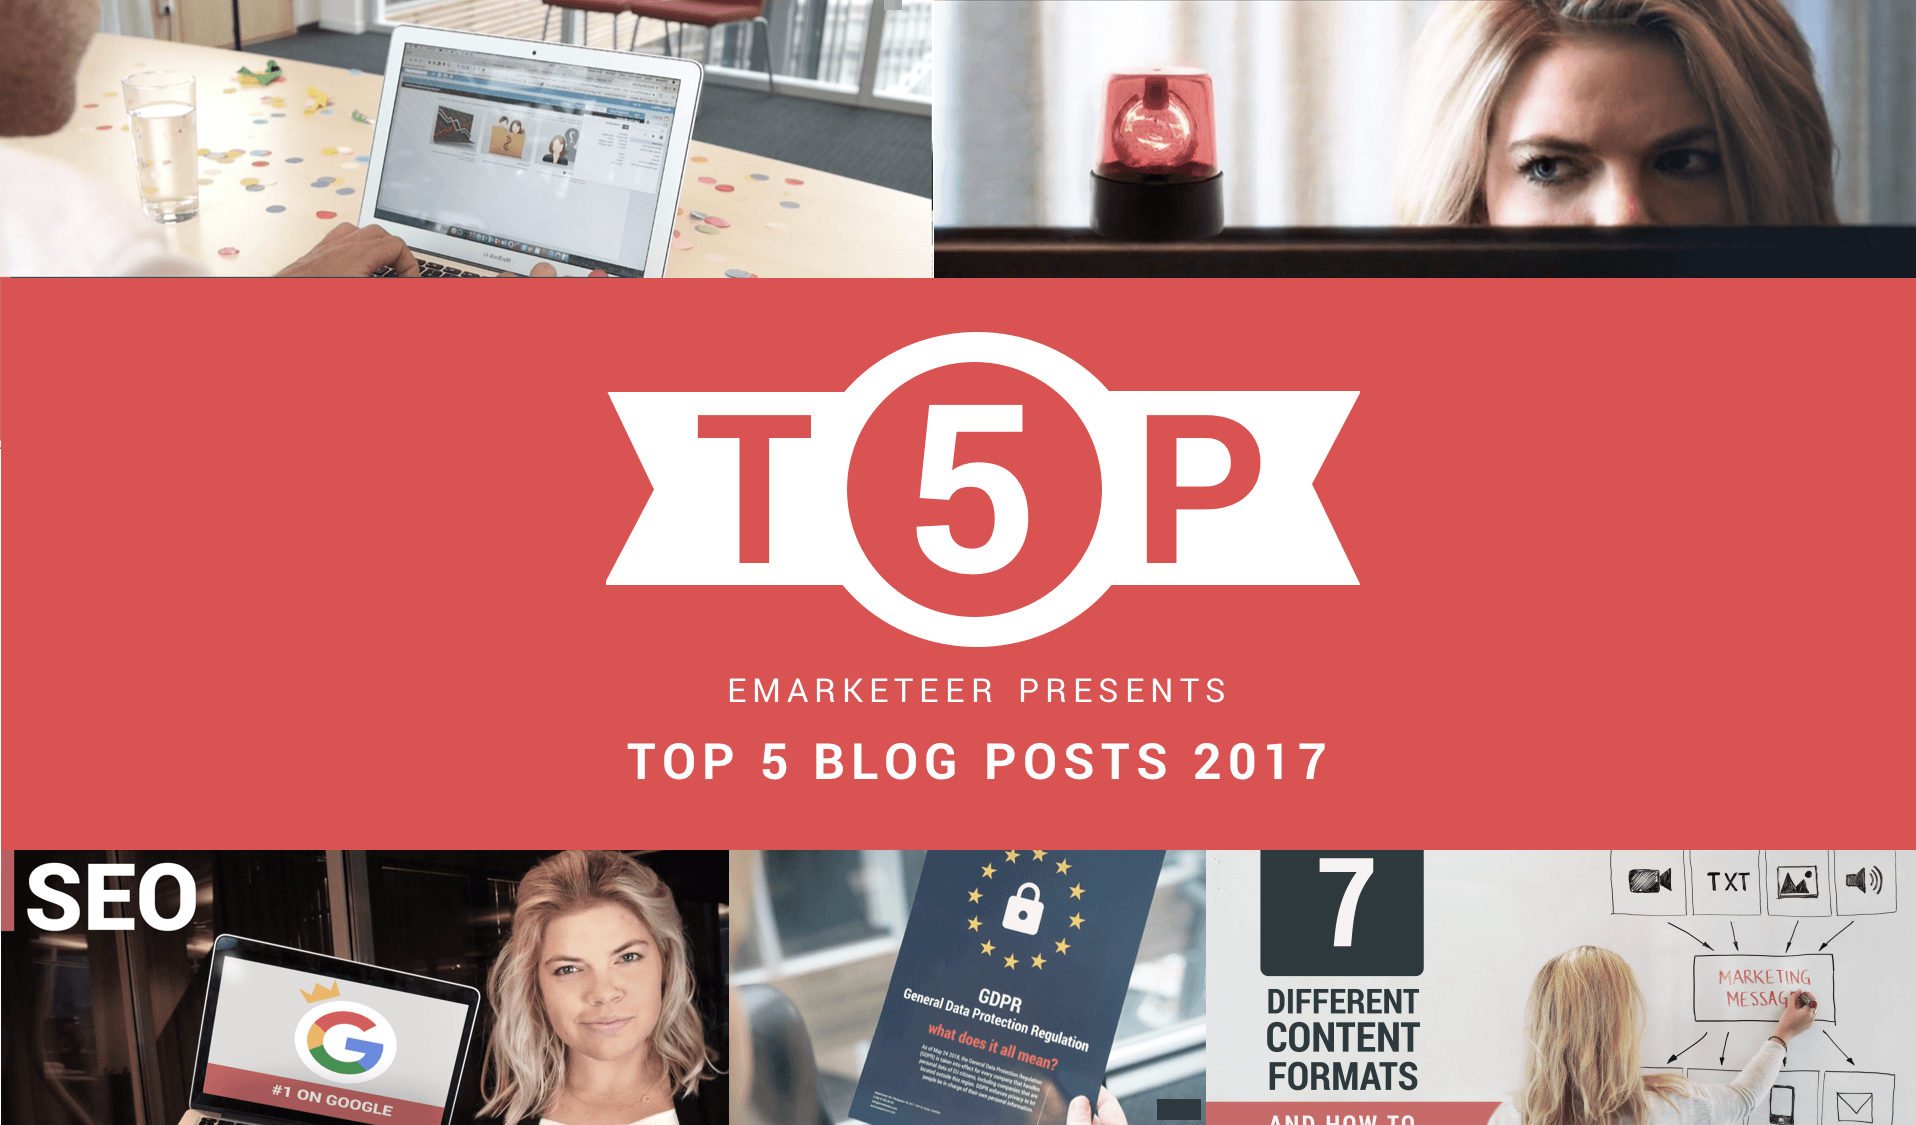 Feature image to blog post on best marketing advice from 2017